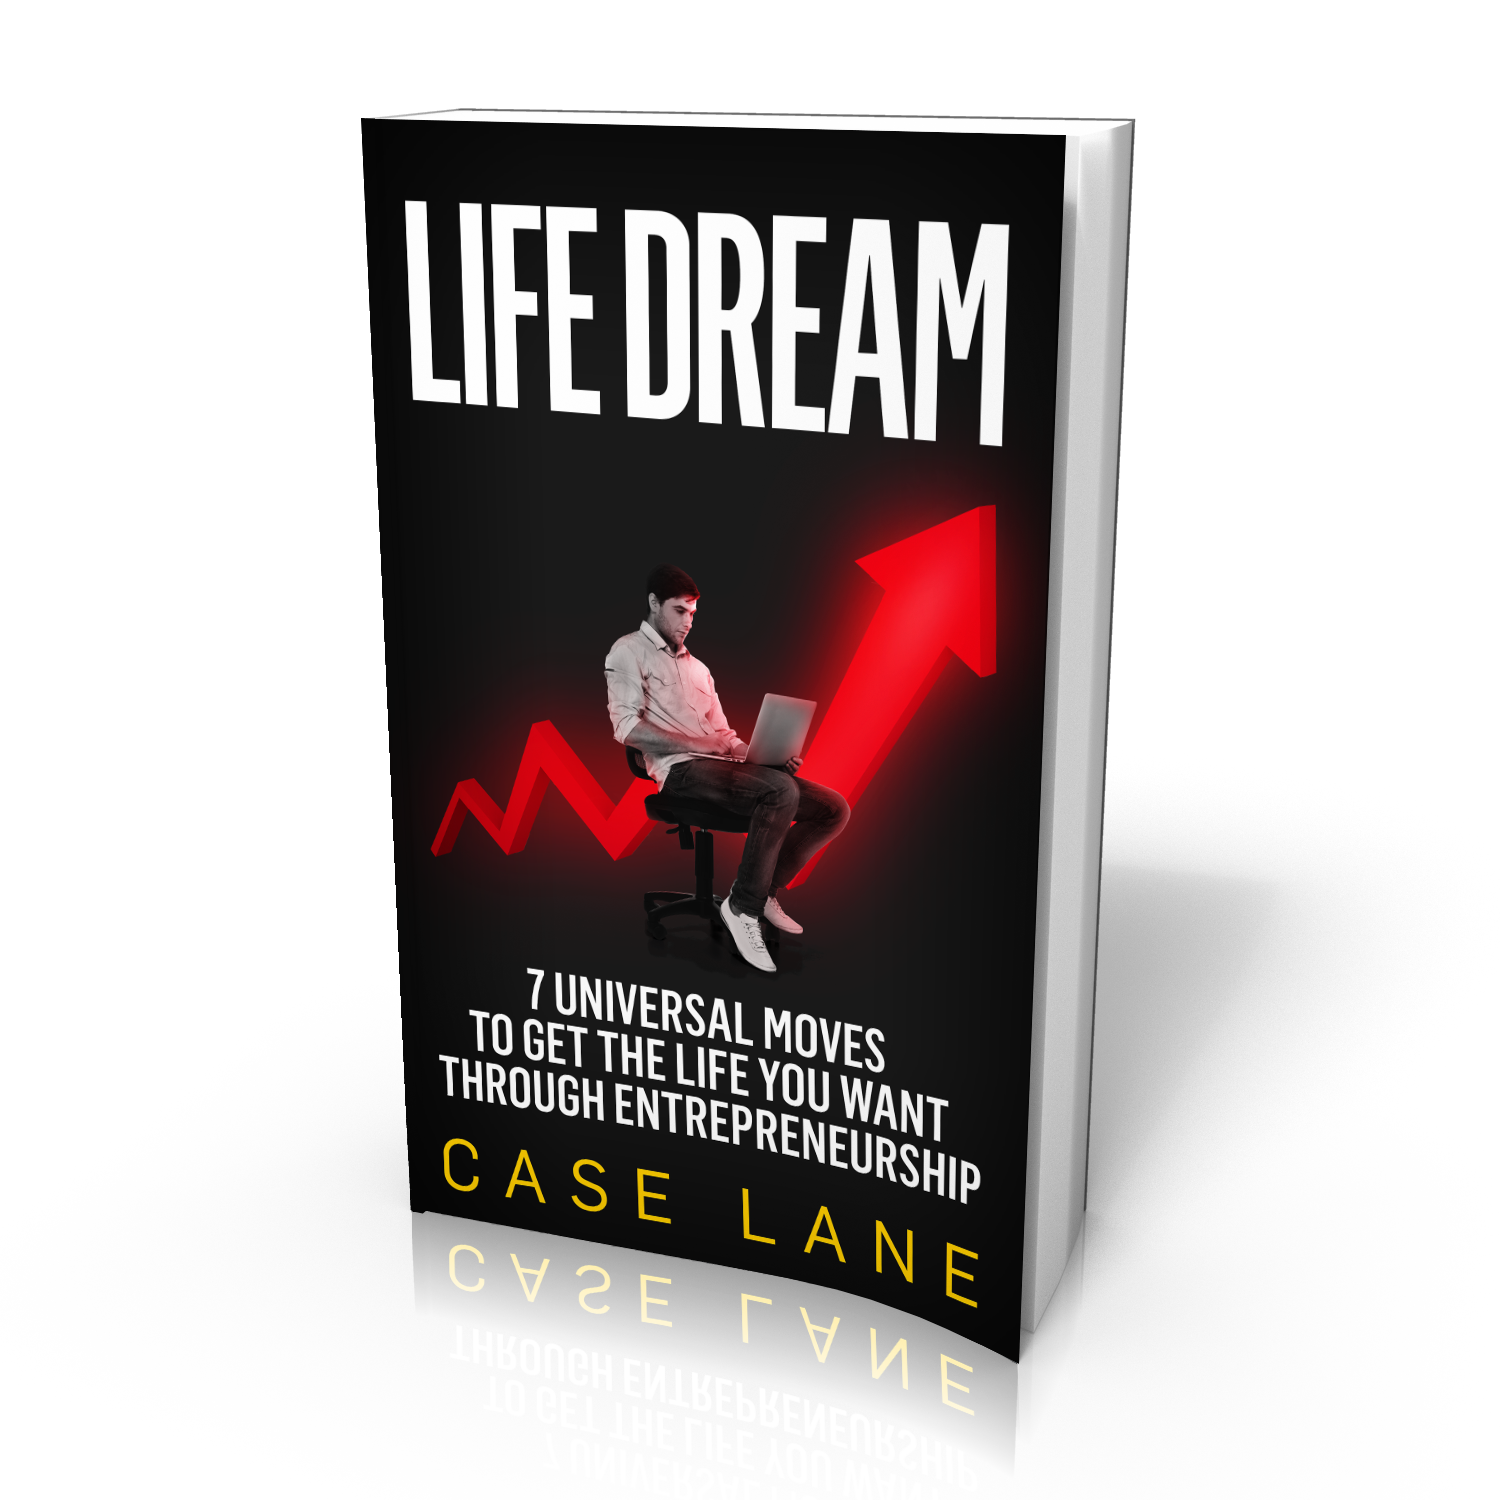 Get the Life Dream book!